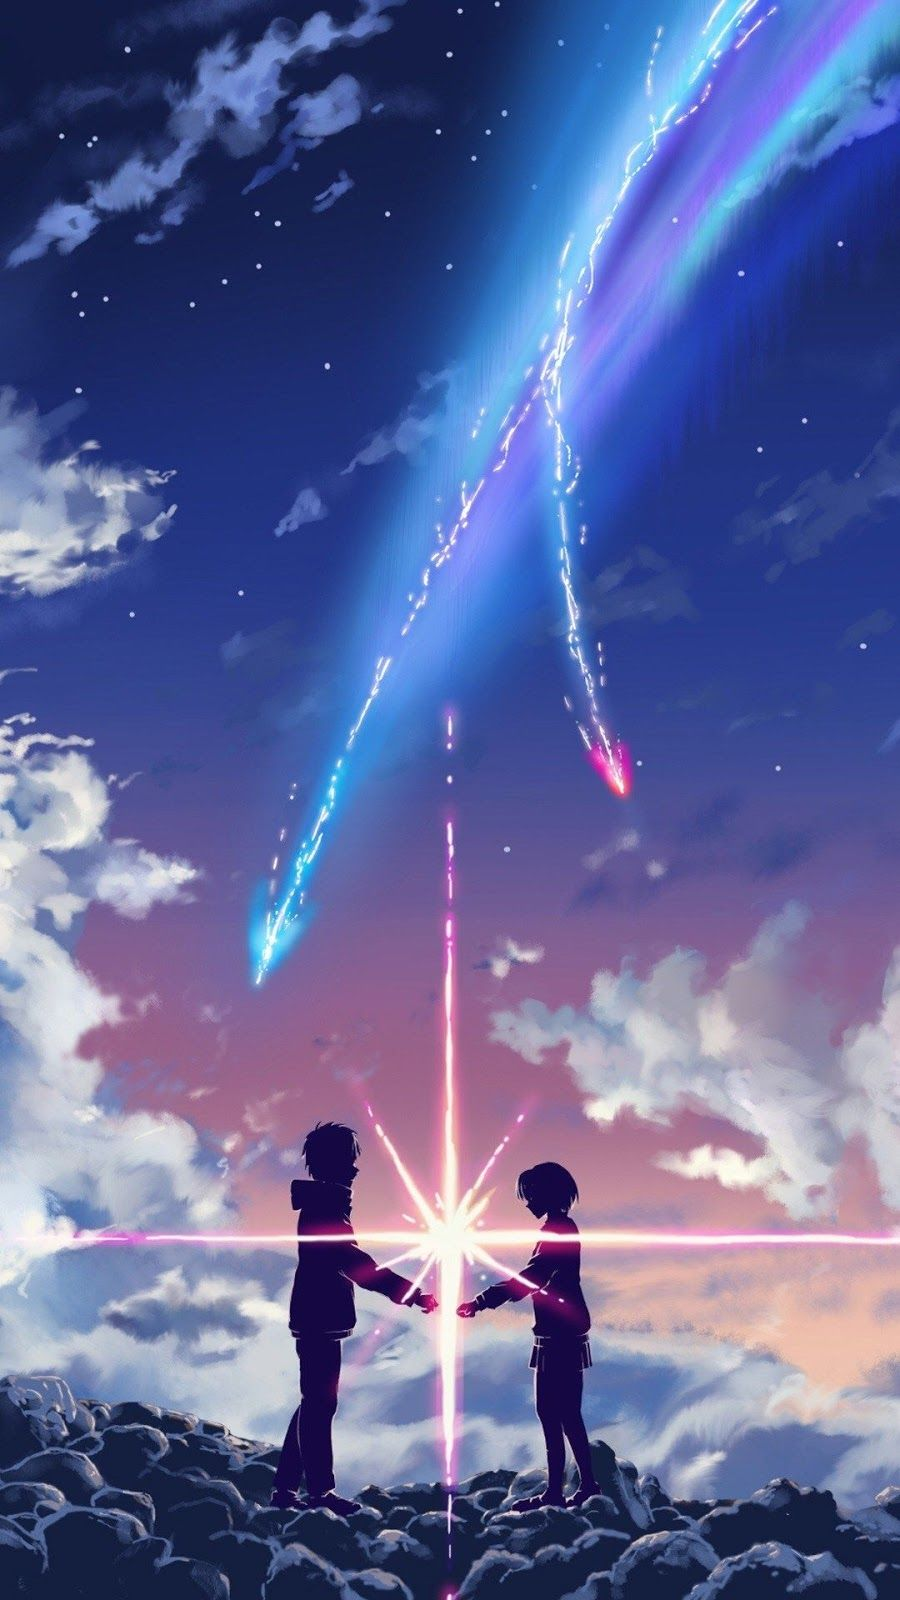 Iphone Wallpapers Hd Anime Be Ou Tech Your Name Movie Your Name Anime Anime Backgrounds Wallpapers